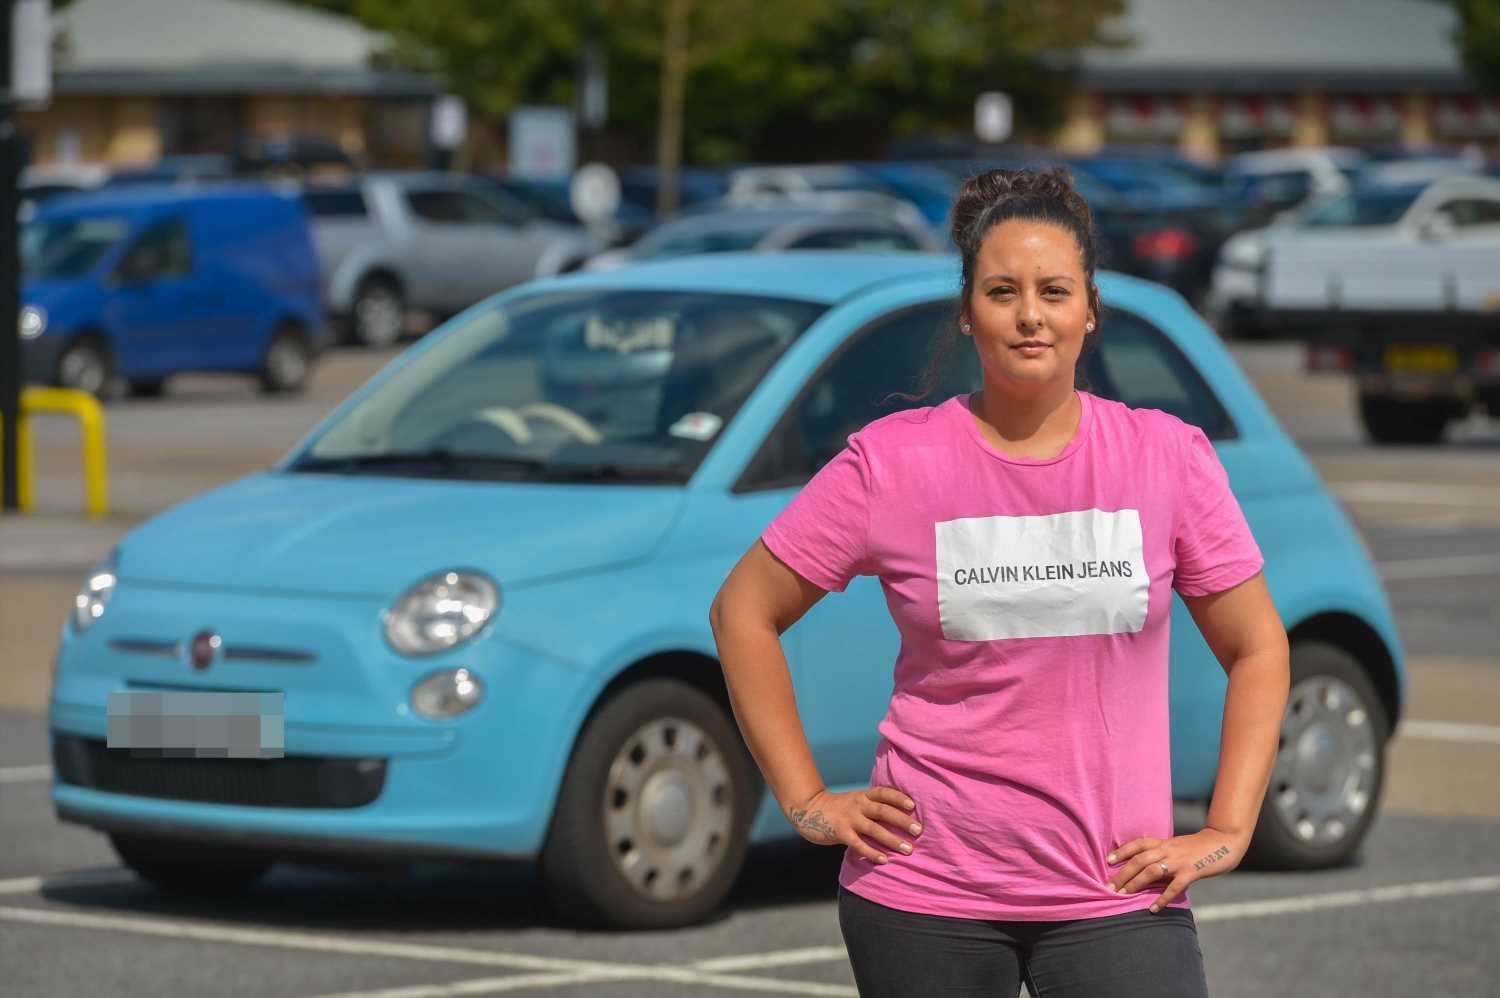 Costa Coffee supervisor hit with whopping £7,000 in parking fines for using her work's car park after licence plate typo